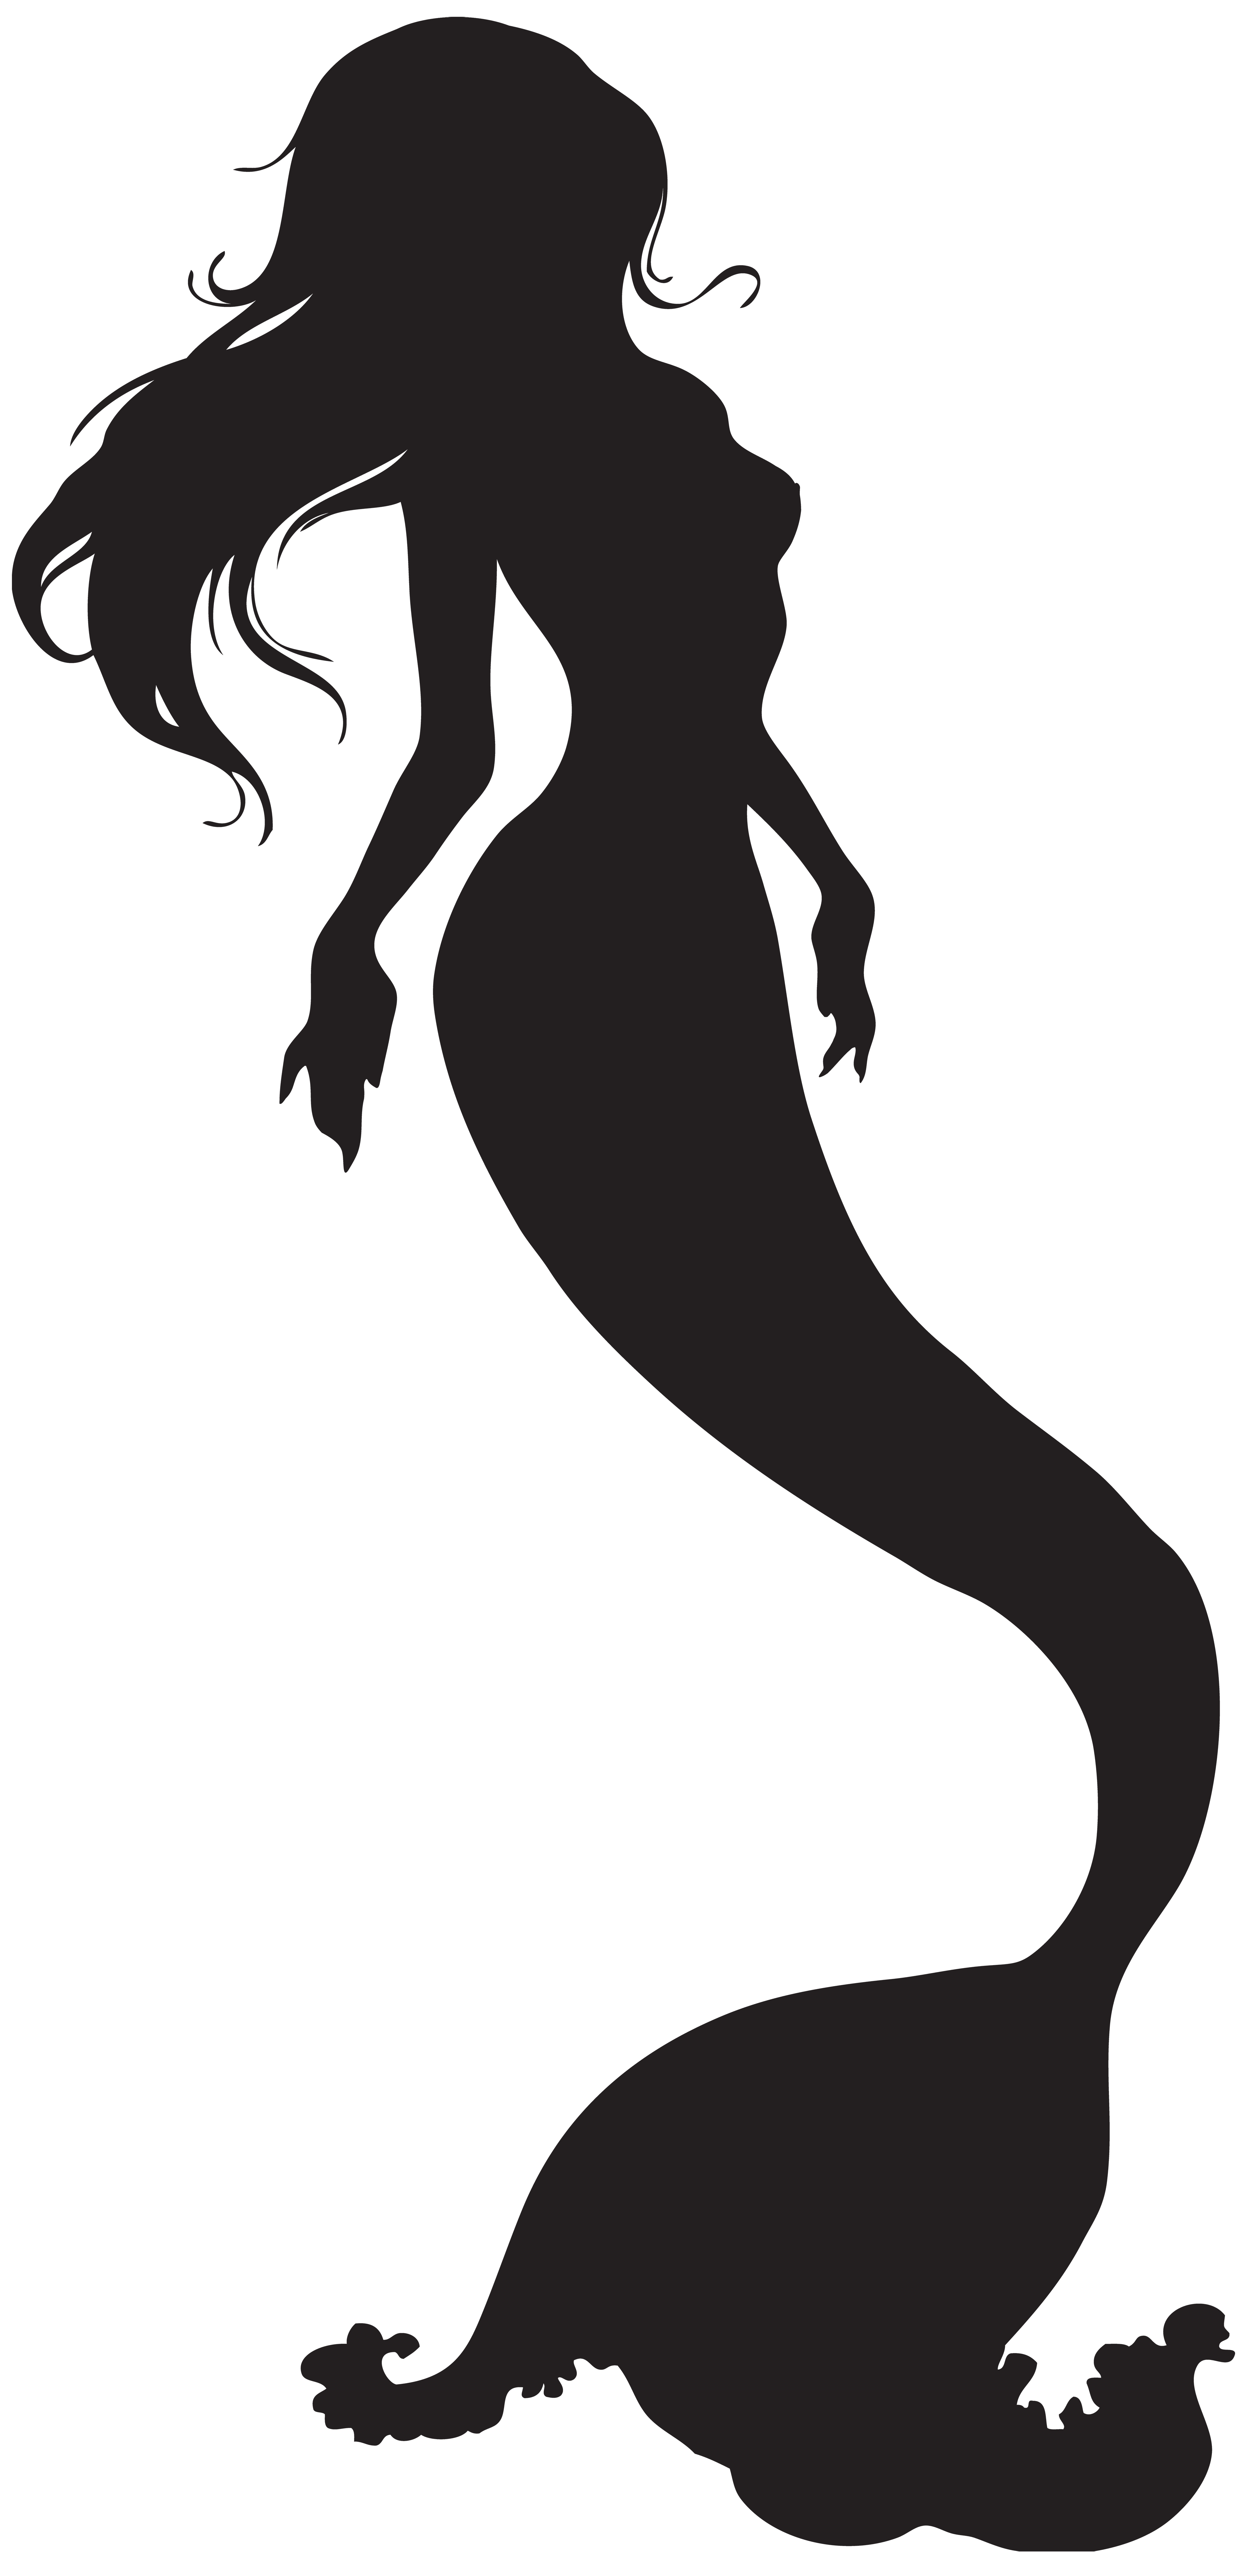 banner library download Hijab vector silhouette. Mermaid clip art net.